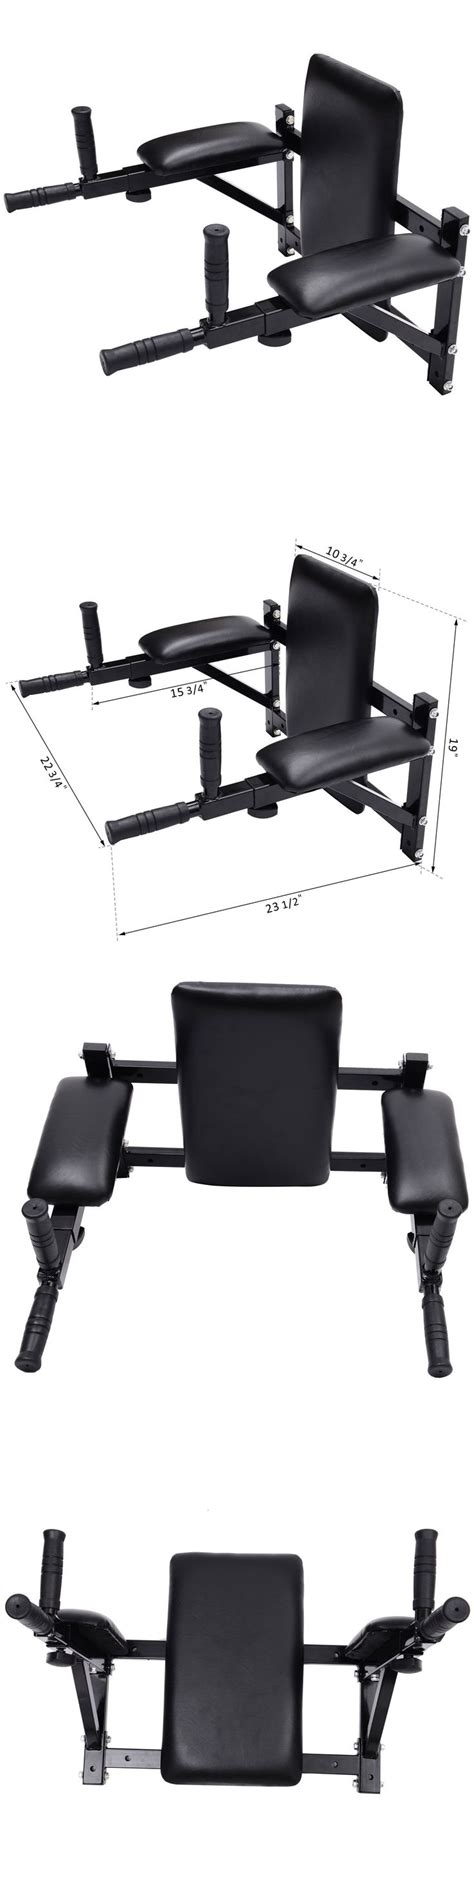 inversion table for uneven hips 10 best fitness images on exercise equipment